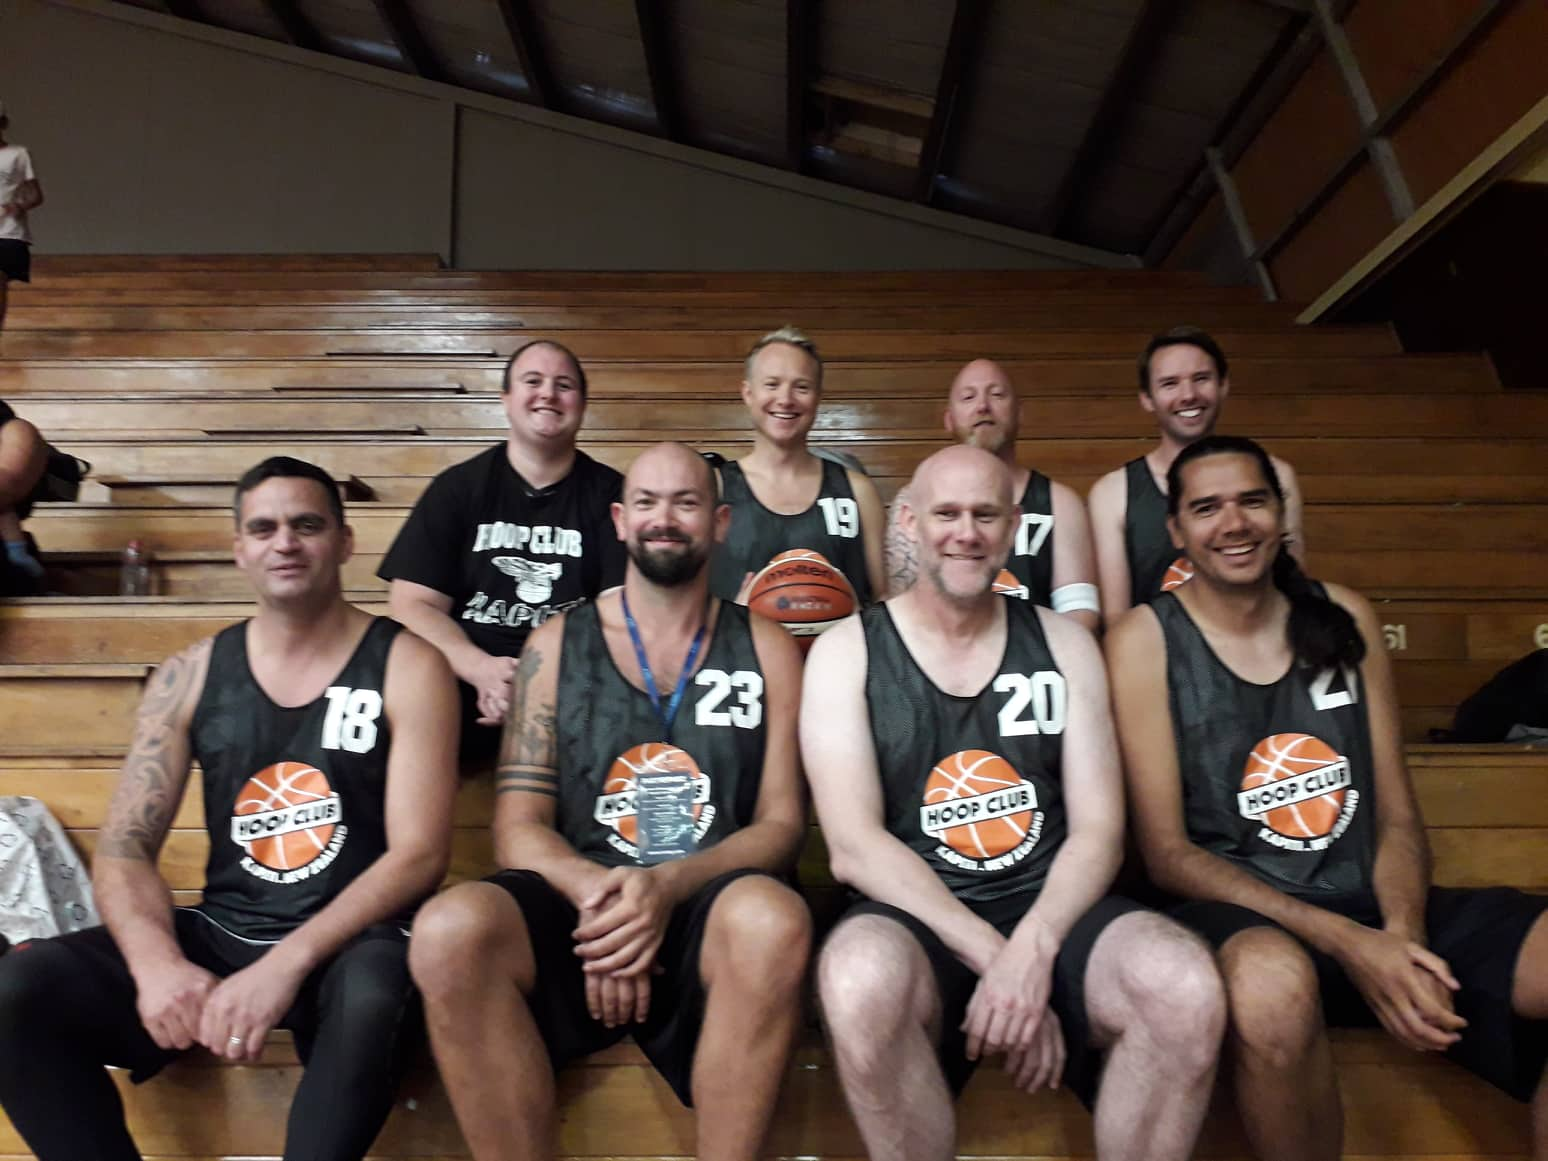 Kapiti Hoop Club - Masters Team